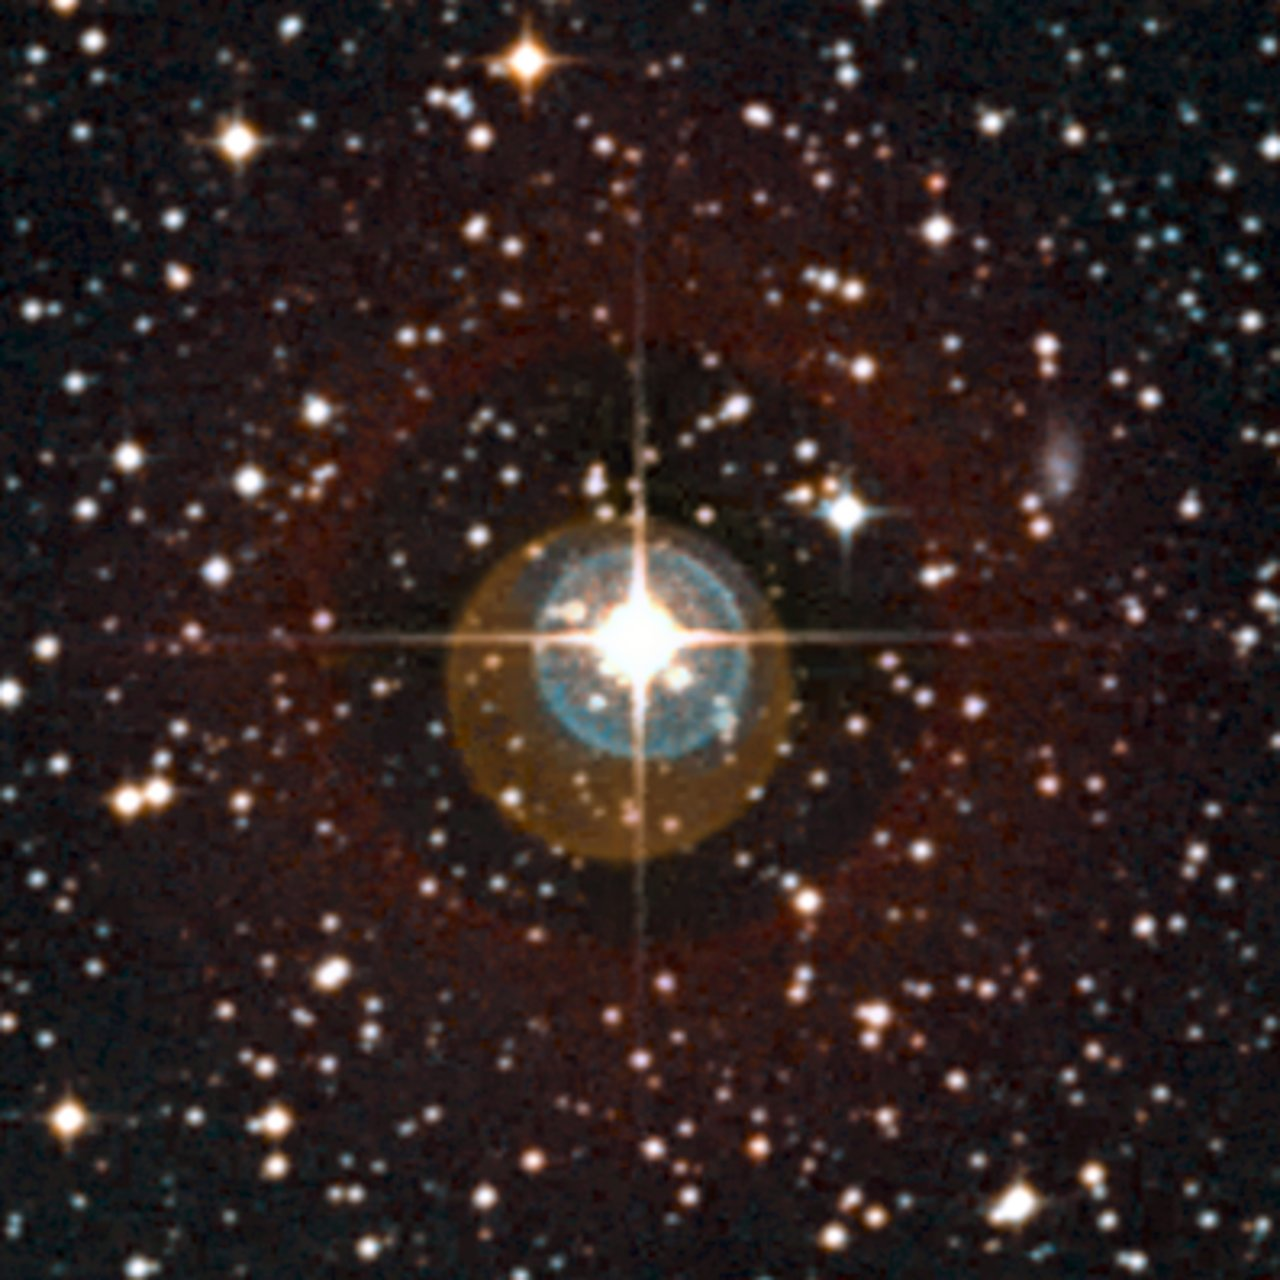 Close-up view of the star HD 85512 | ESO